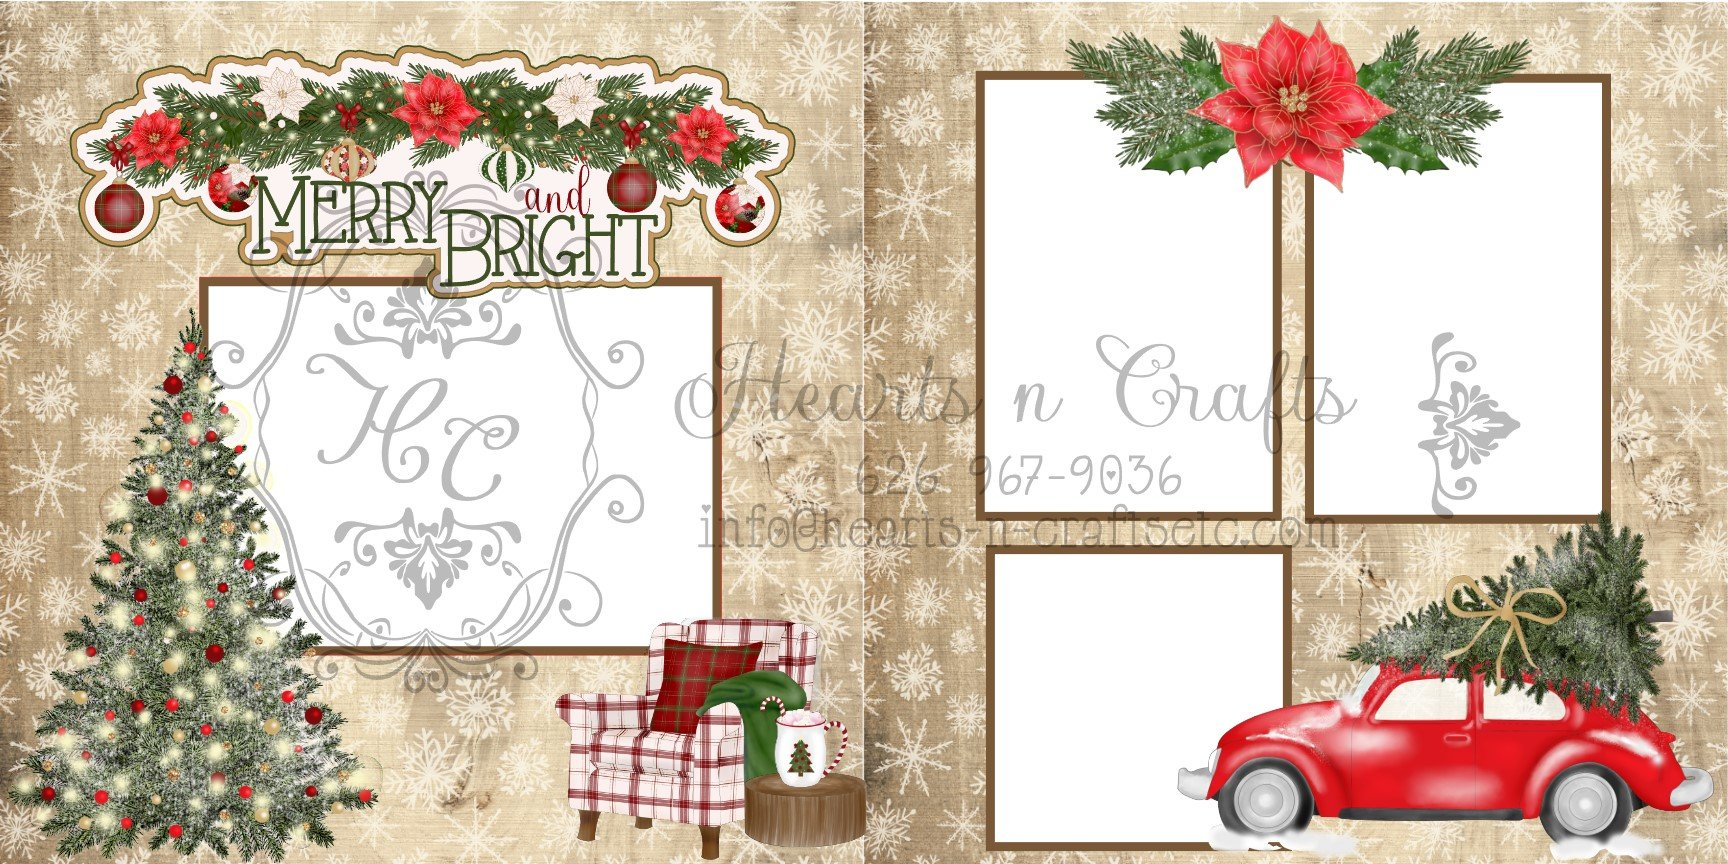 Merry & Bright two page layout